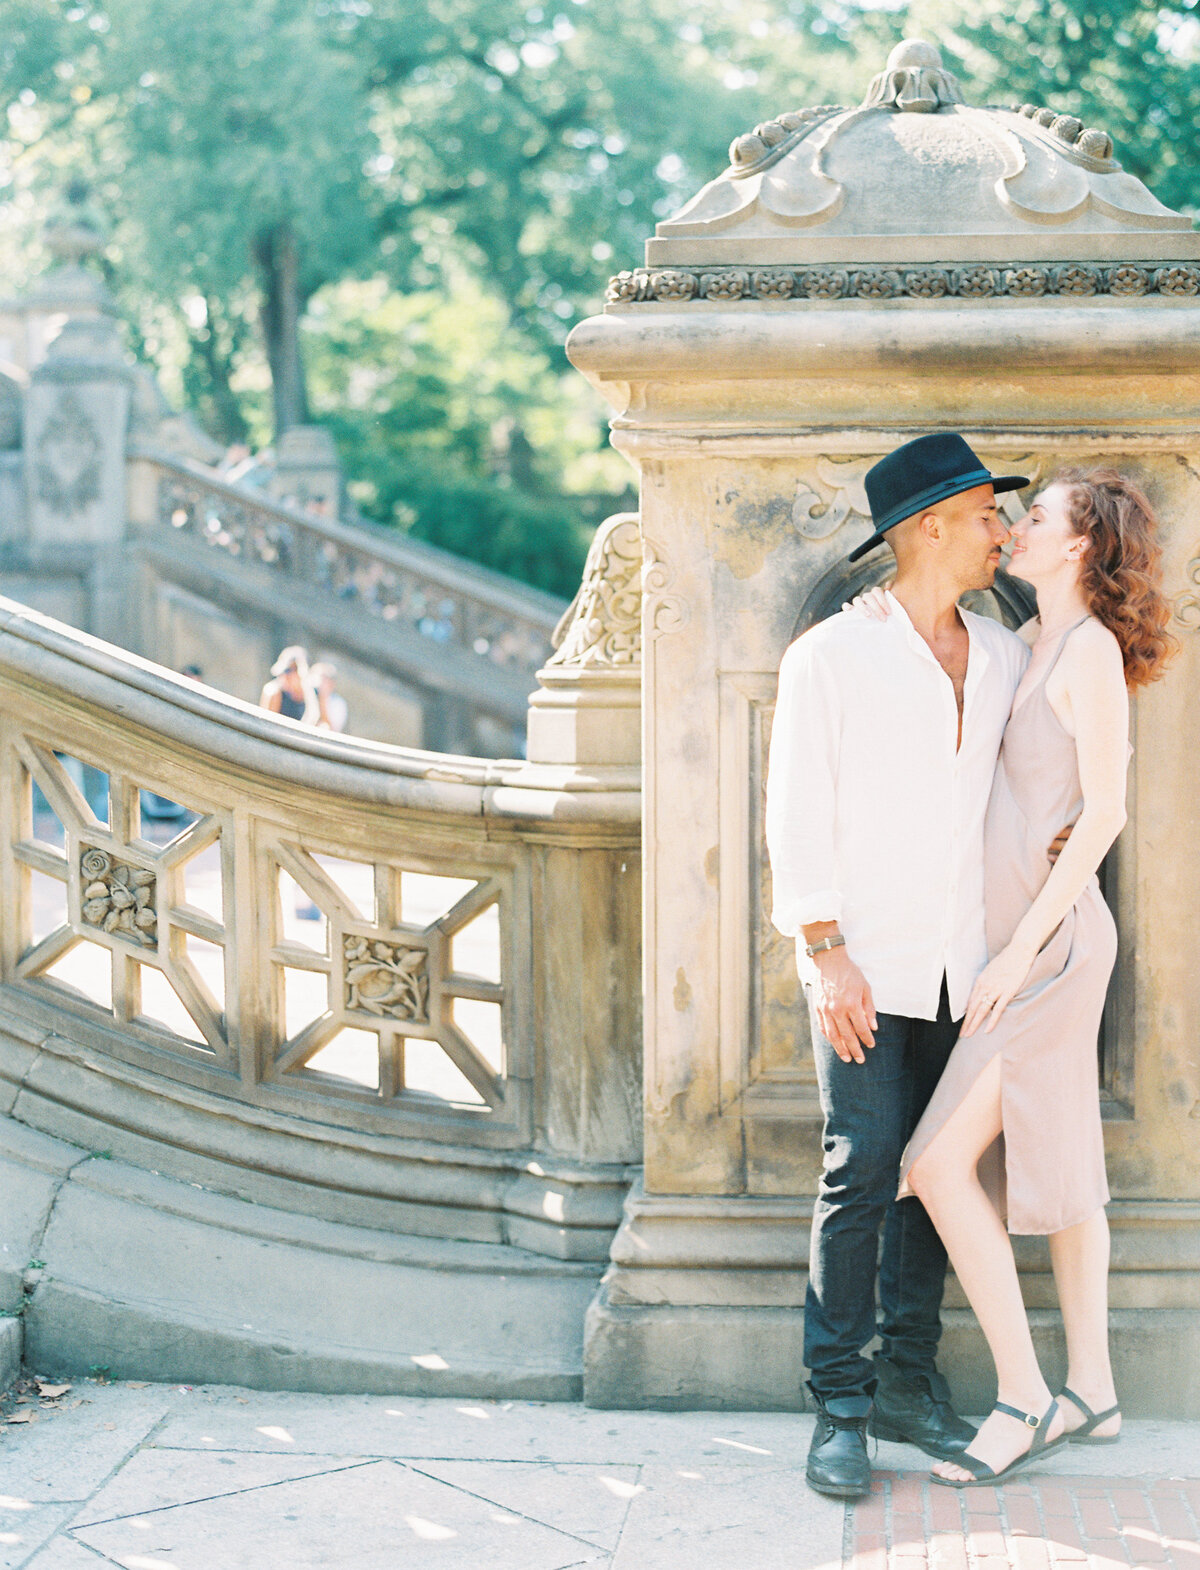 SALLYPINERAPHOTOGRAPHY_ANNABELLECARLOS_NYCENGAGEMENTPHOTOGRAPHY-91